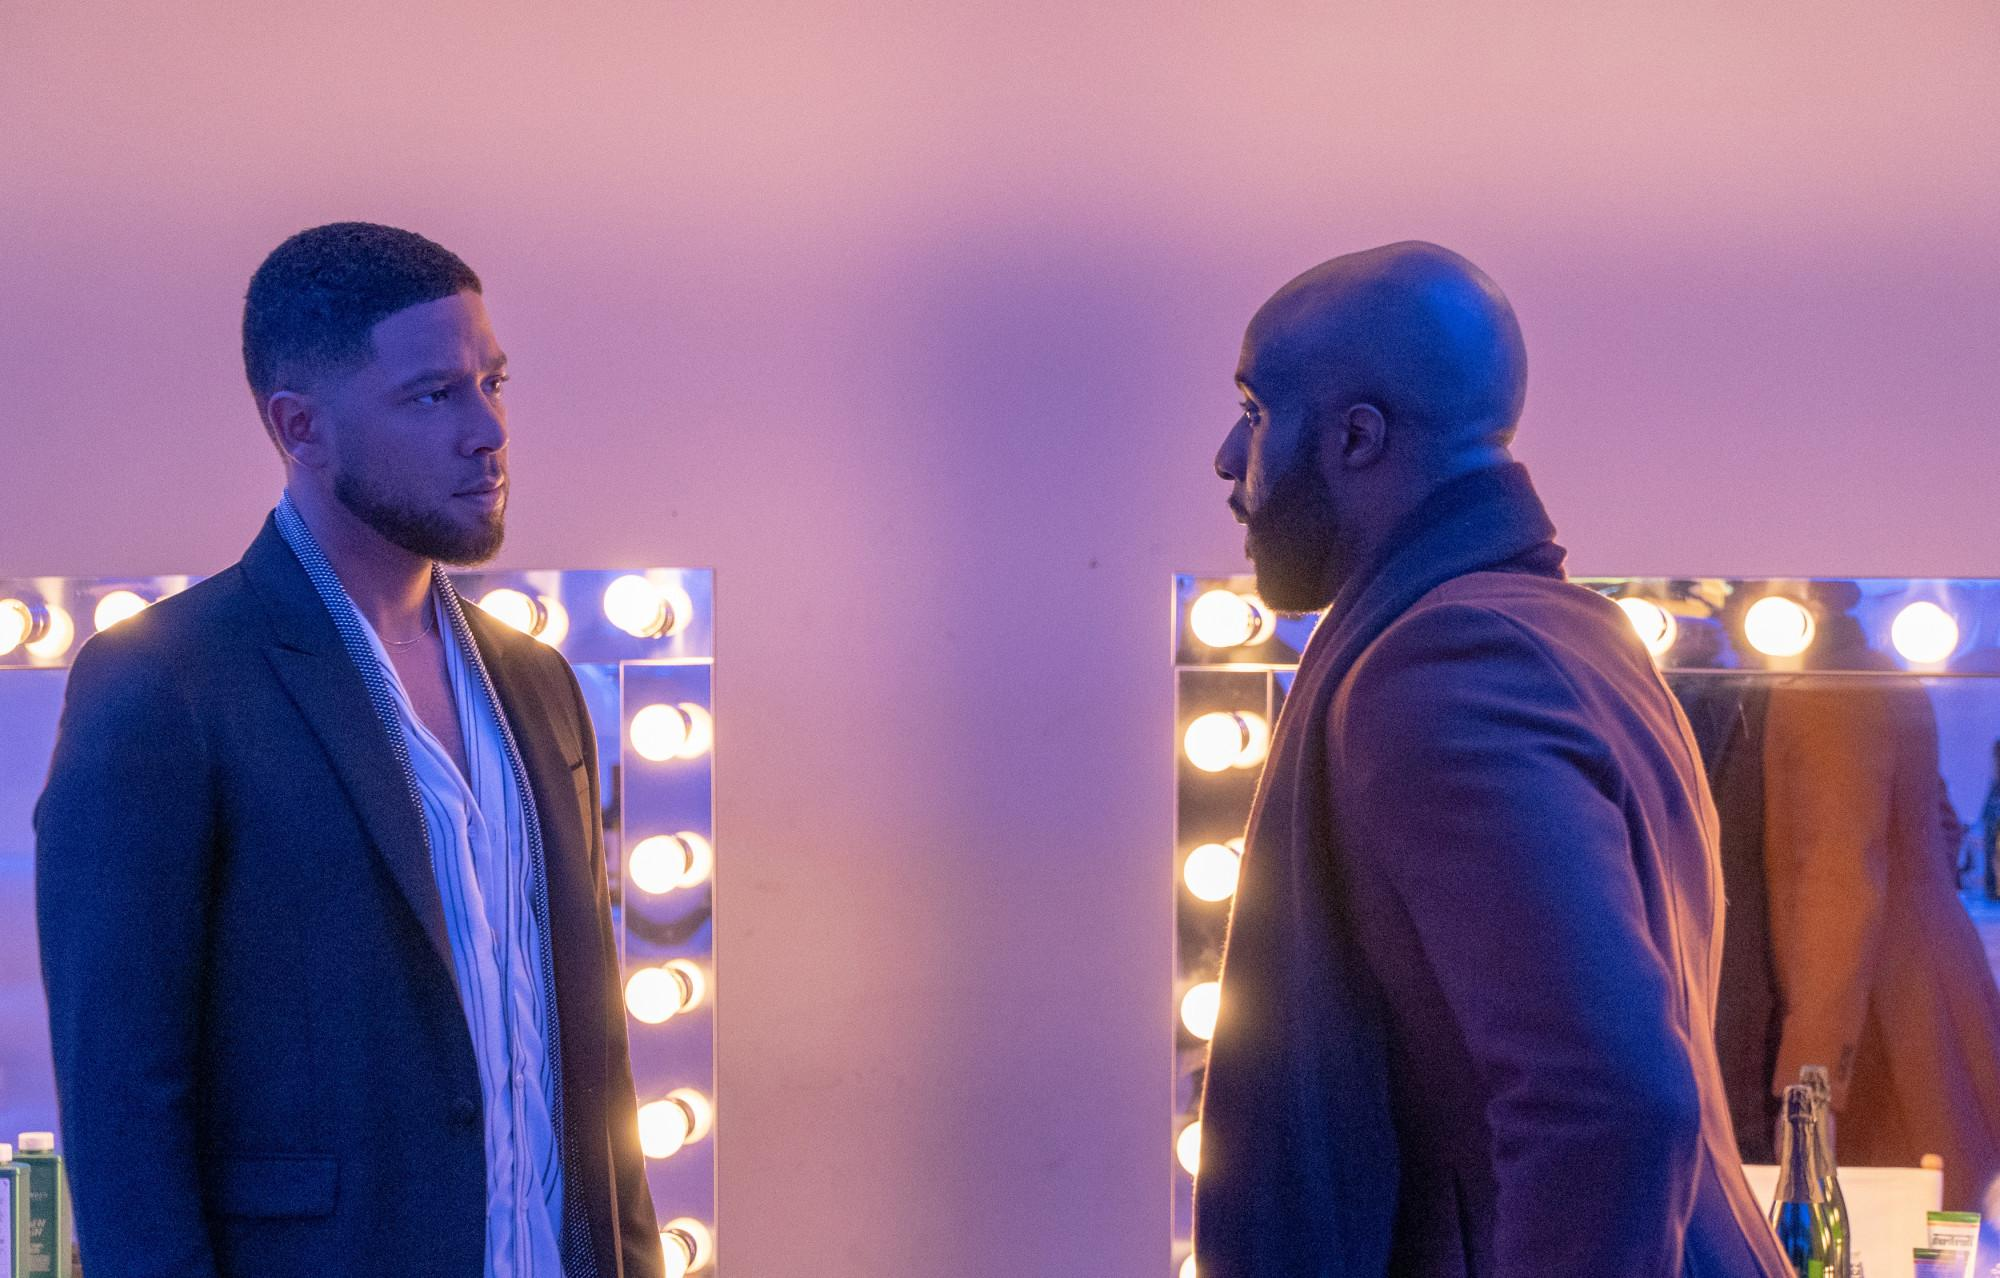 Empire' Season 5, Episode 9 'Had It From My Father' Fall